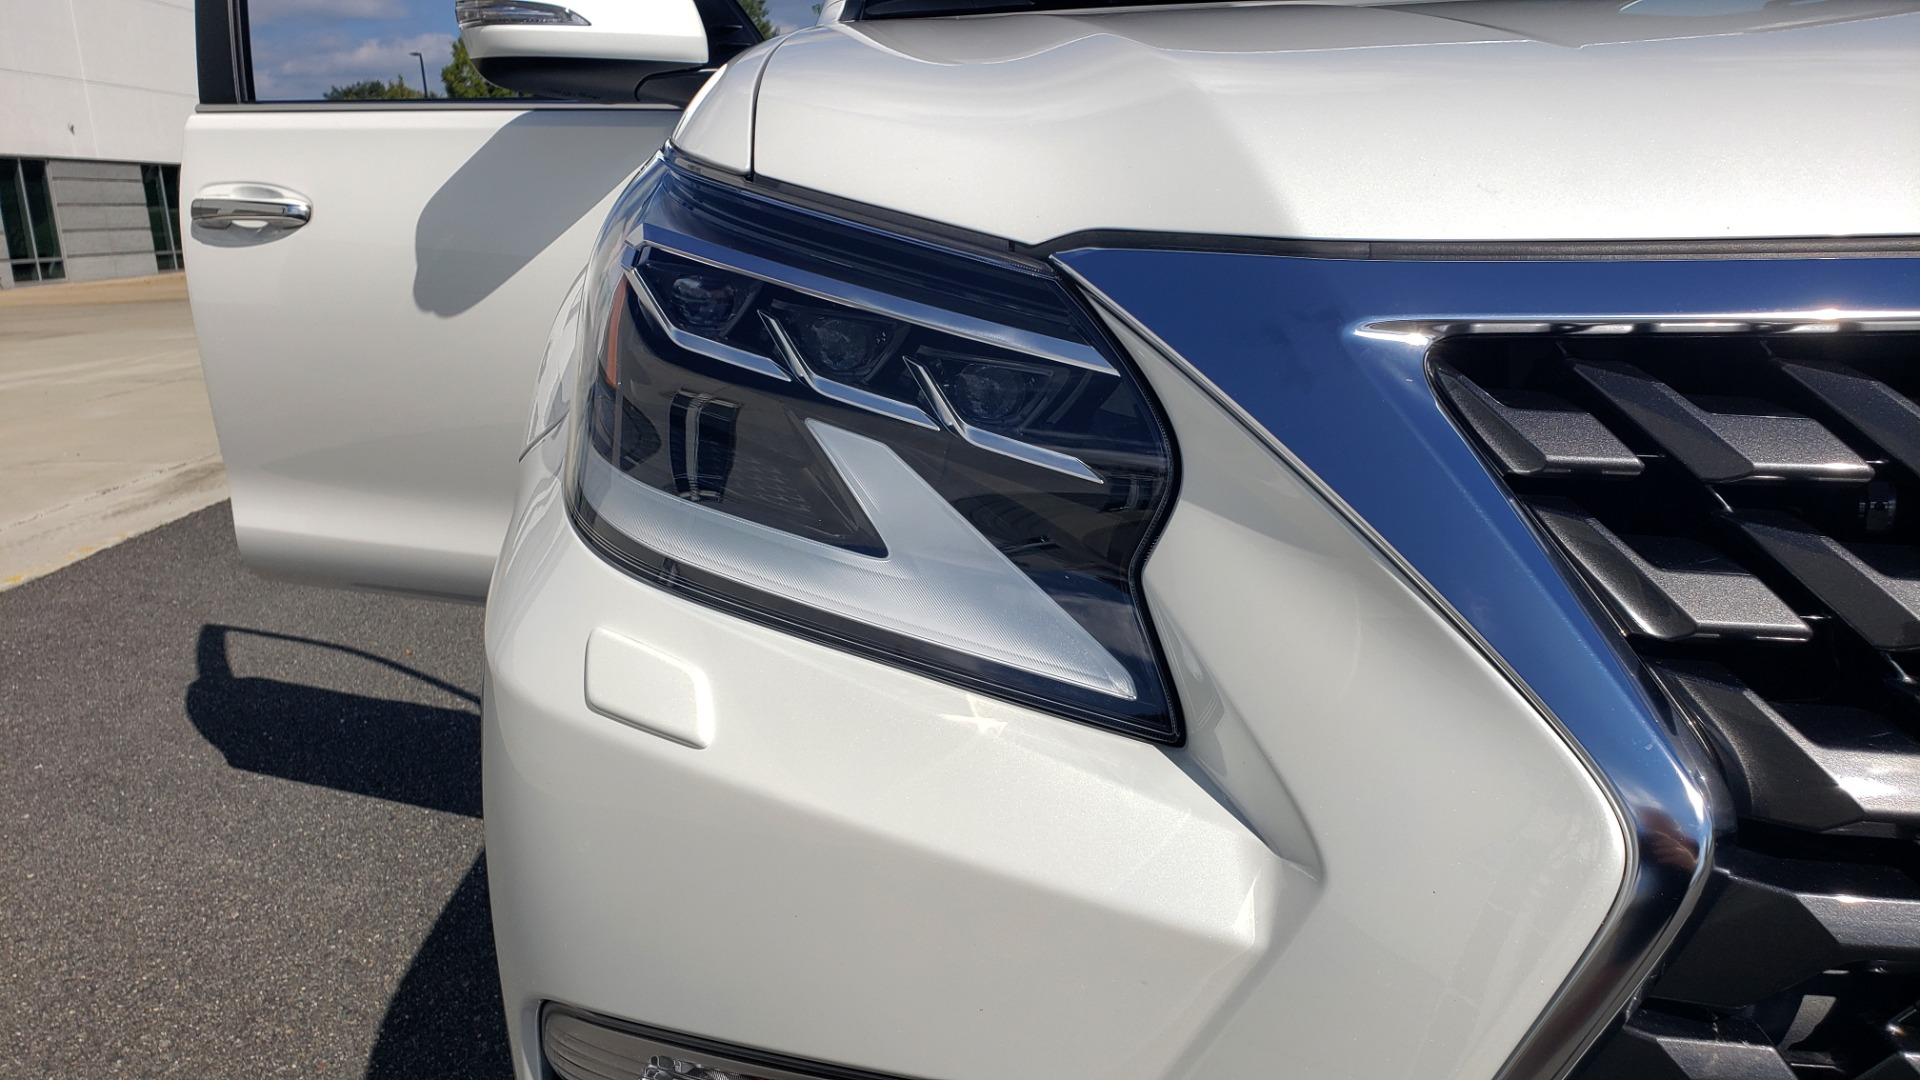 Used 2021 Lexus GX 460 PREMIUM / AWD / NAV / SUNROOF / 3-ROW / REARVIEW for sale Sold at Formula Imports in Charlotte NC 28227 22